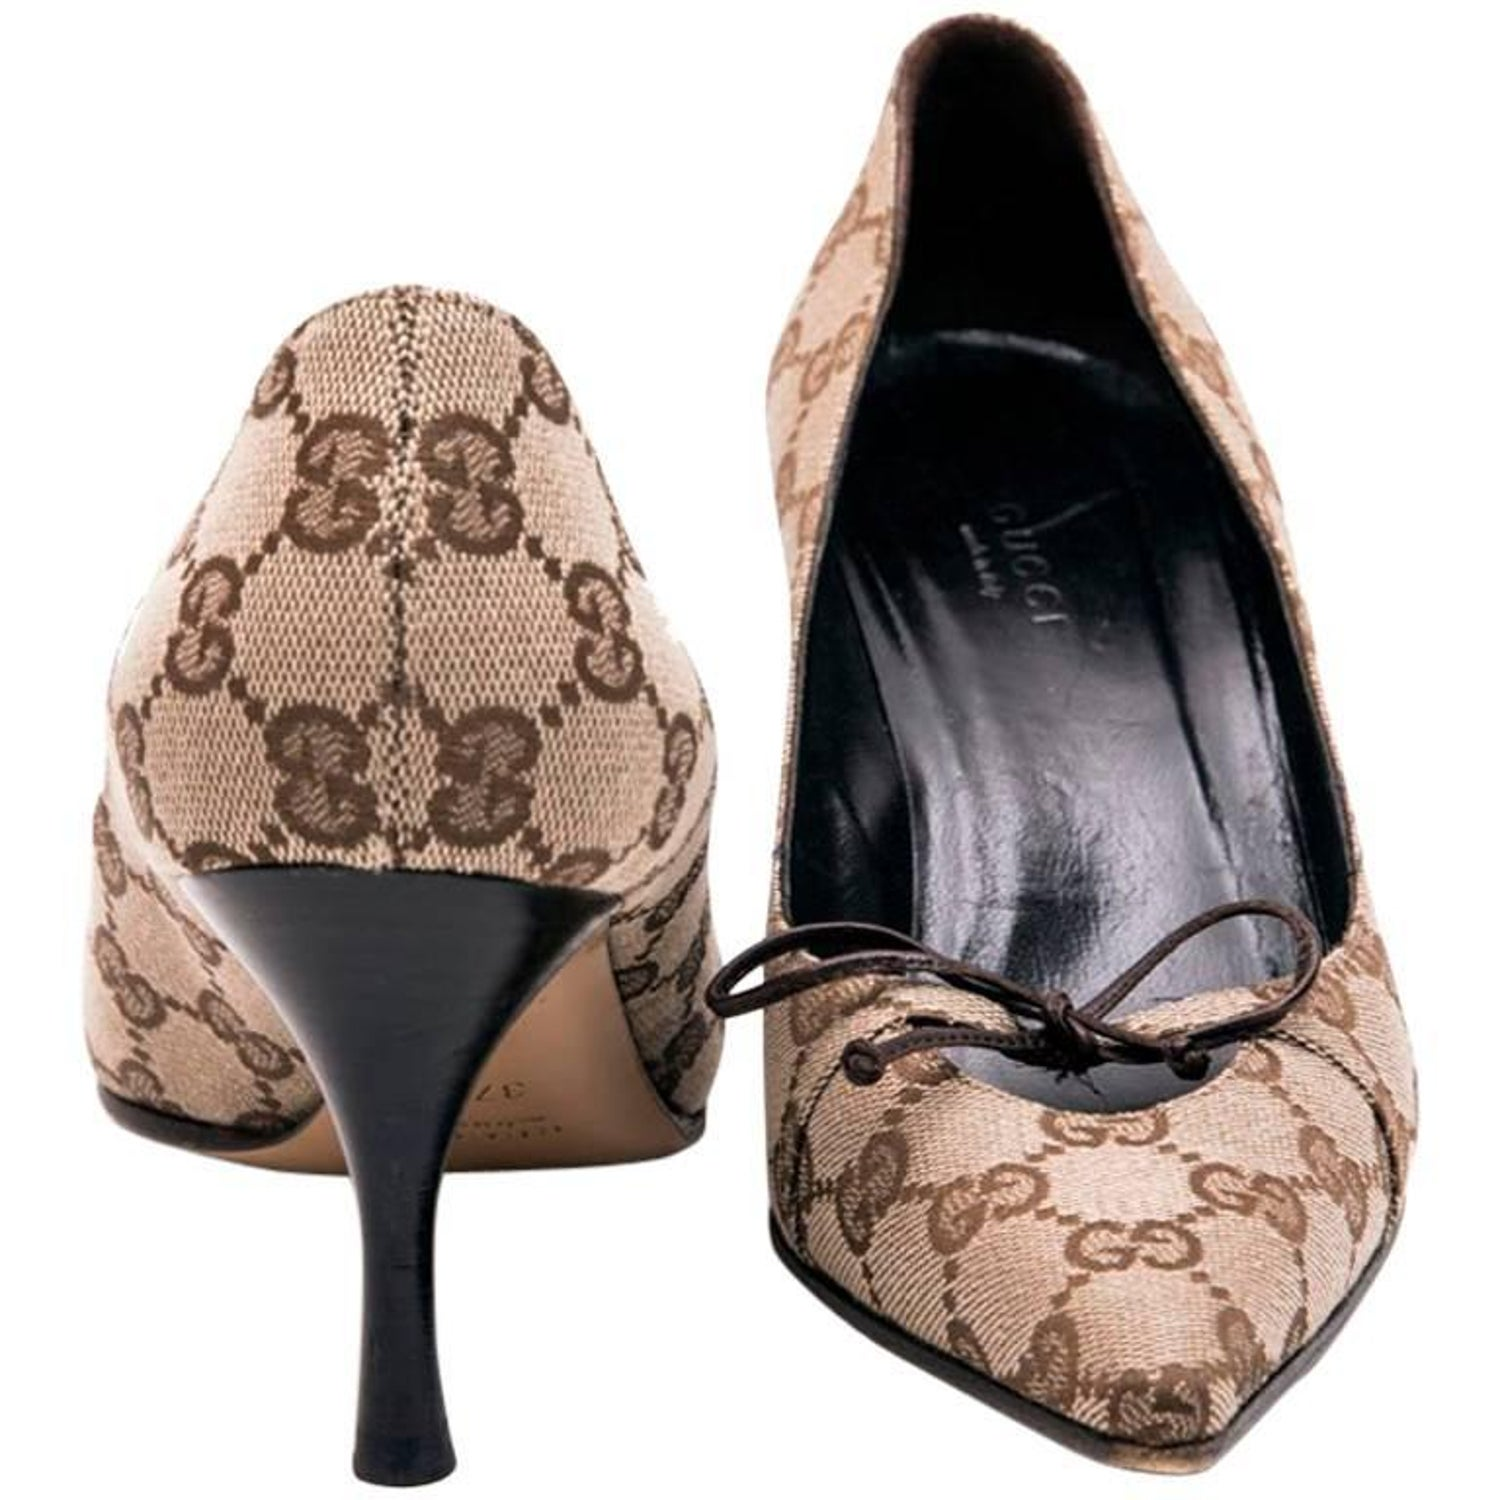 655c3b391 GUCCI High Heels Size 37FR in Brown Monogram Pattern Canvas at 1stdibs